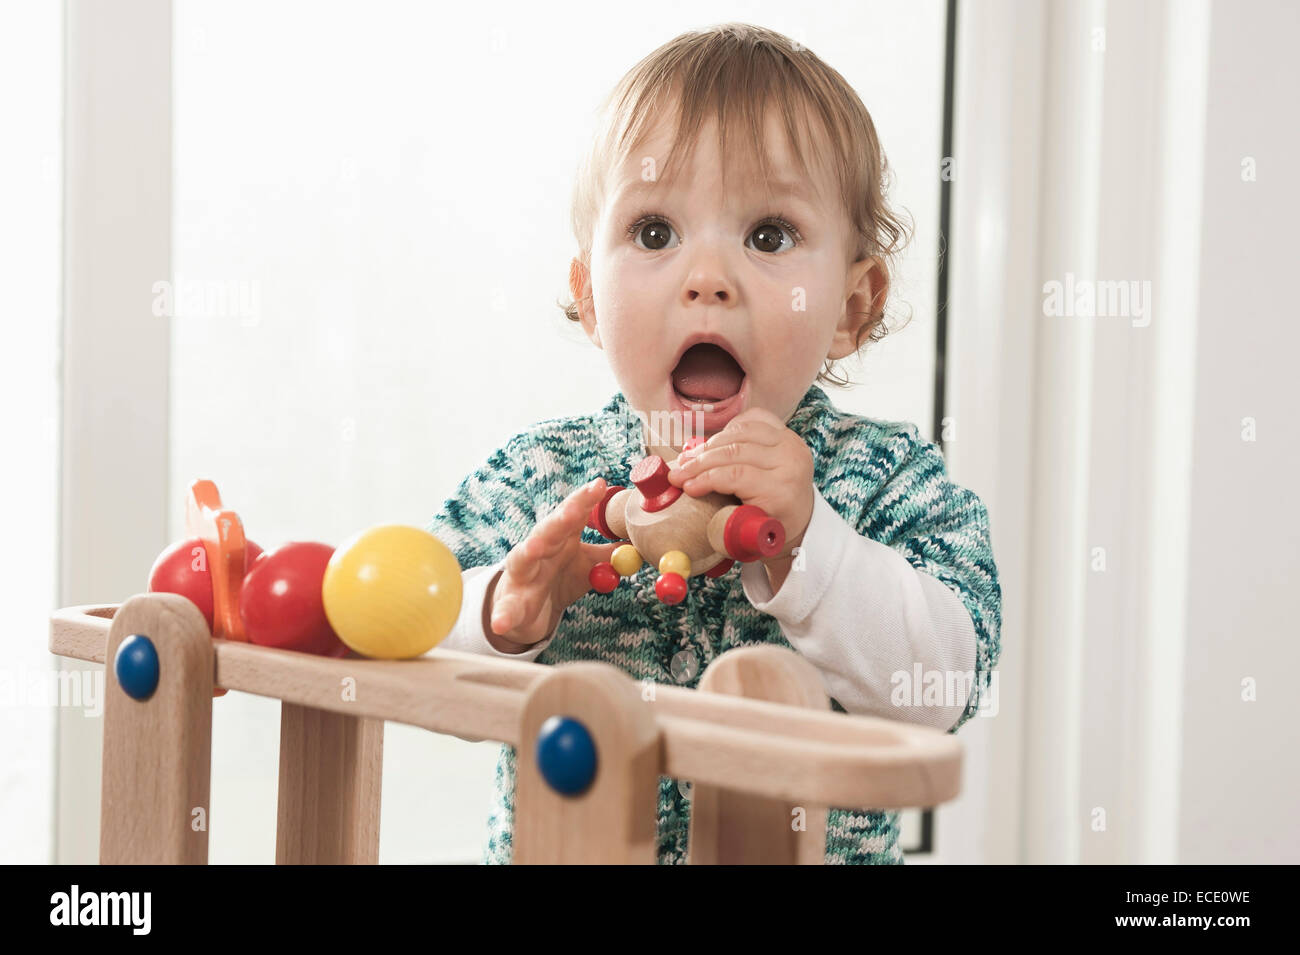 Toddler Toys Photography : Portrait year old baby girl playing toy stock photo